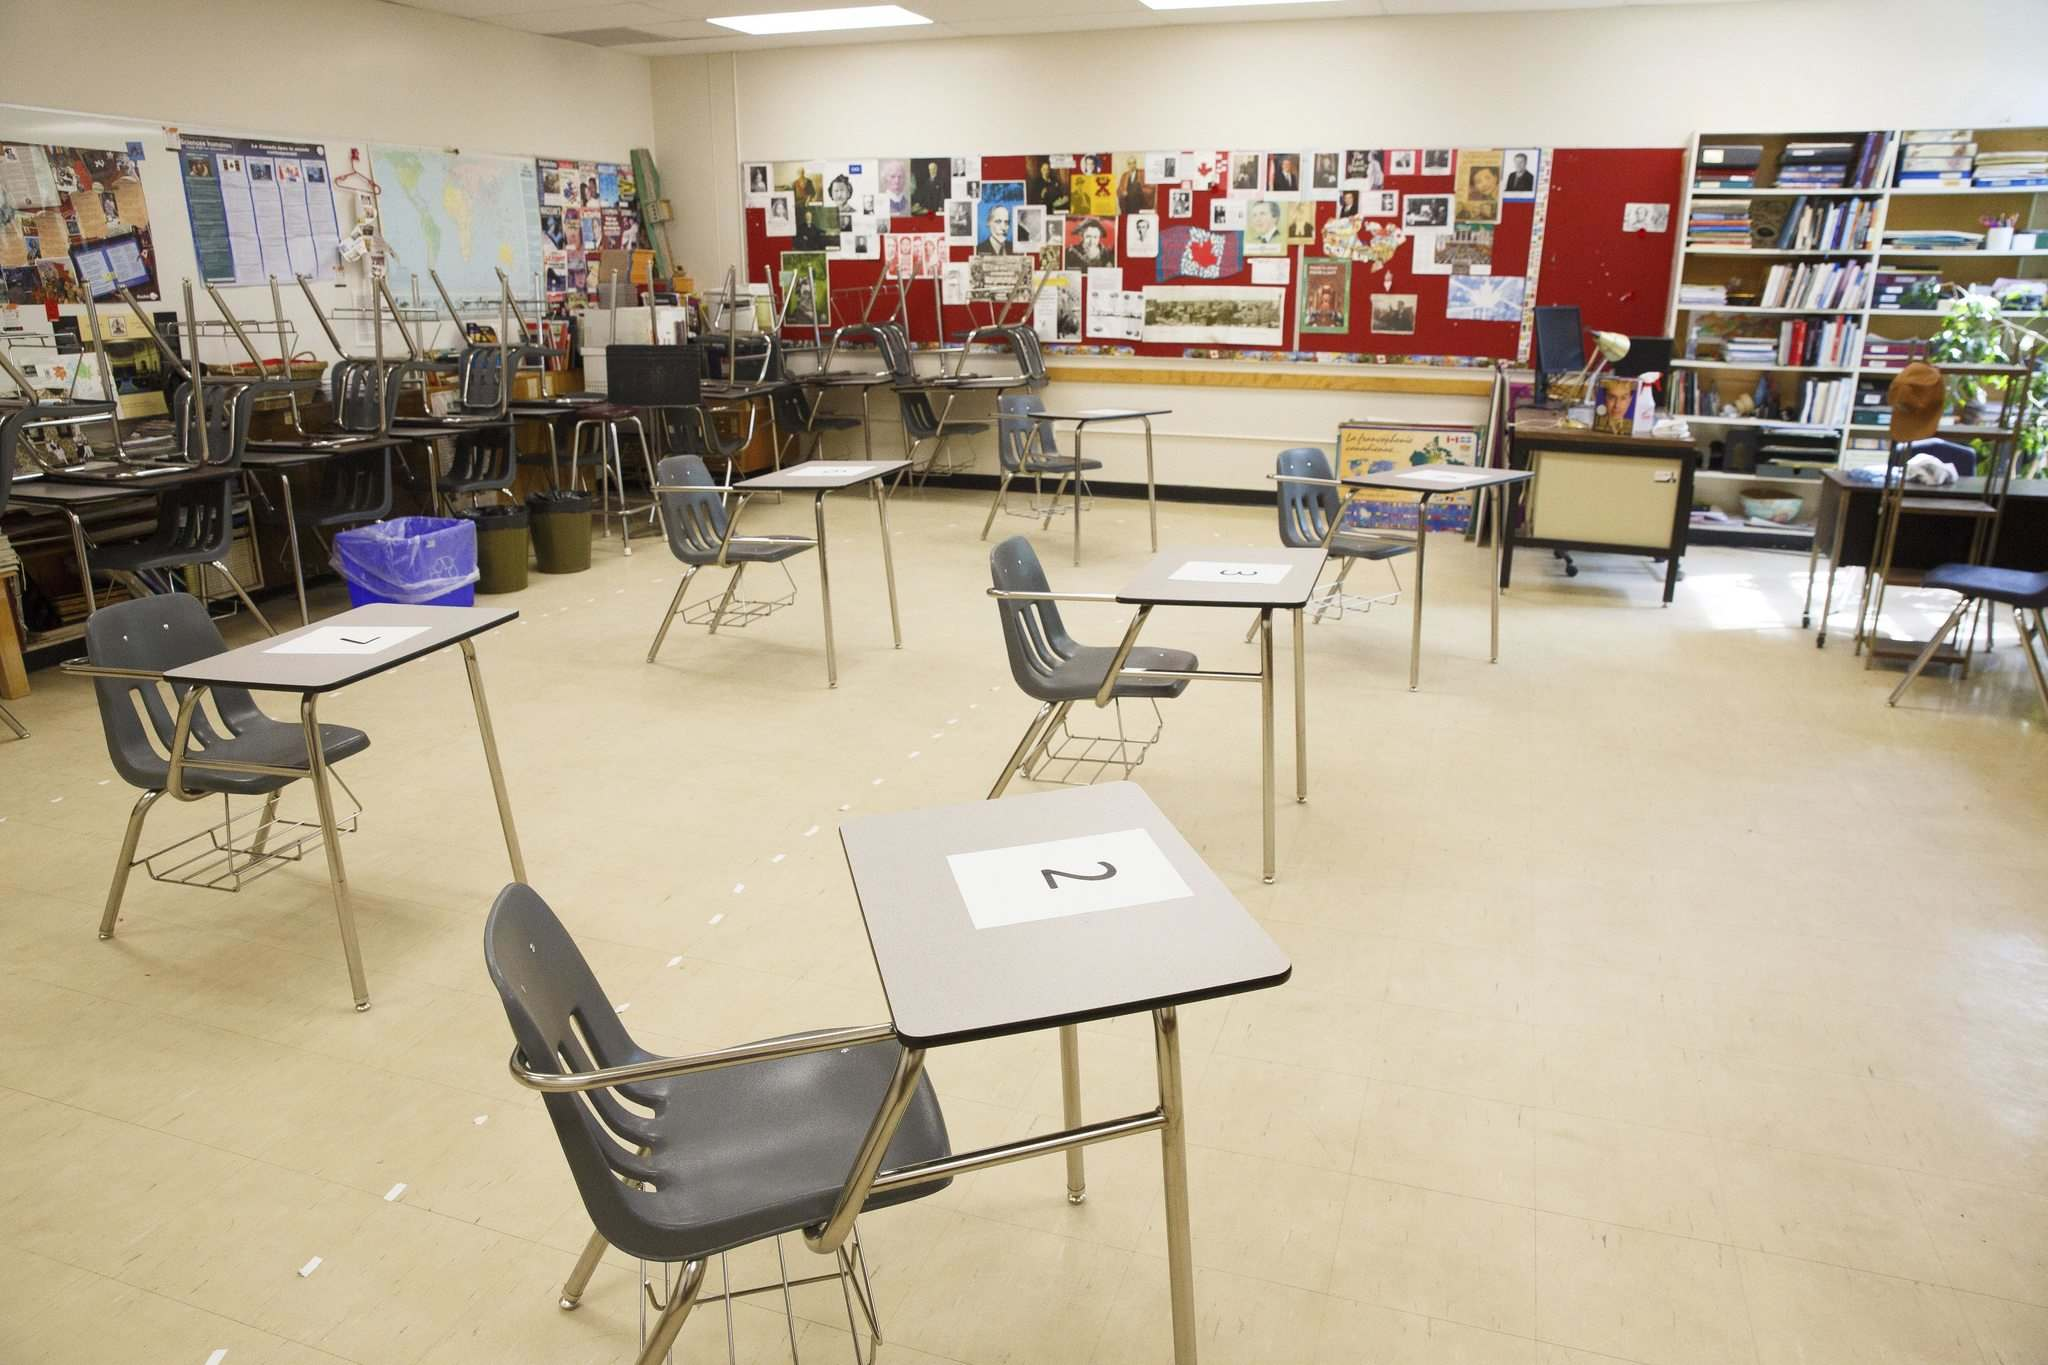 Clarity is required regarding the future of Manitoba's classrooms. (Mike Deal / Winnipeg Free Press files)